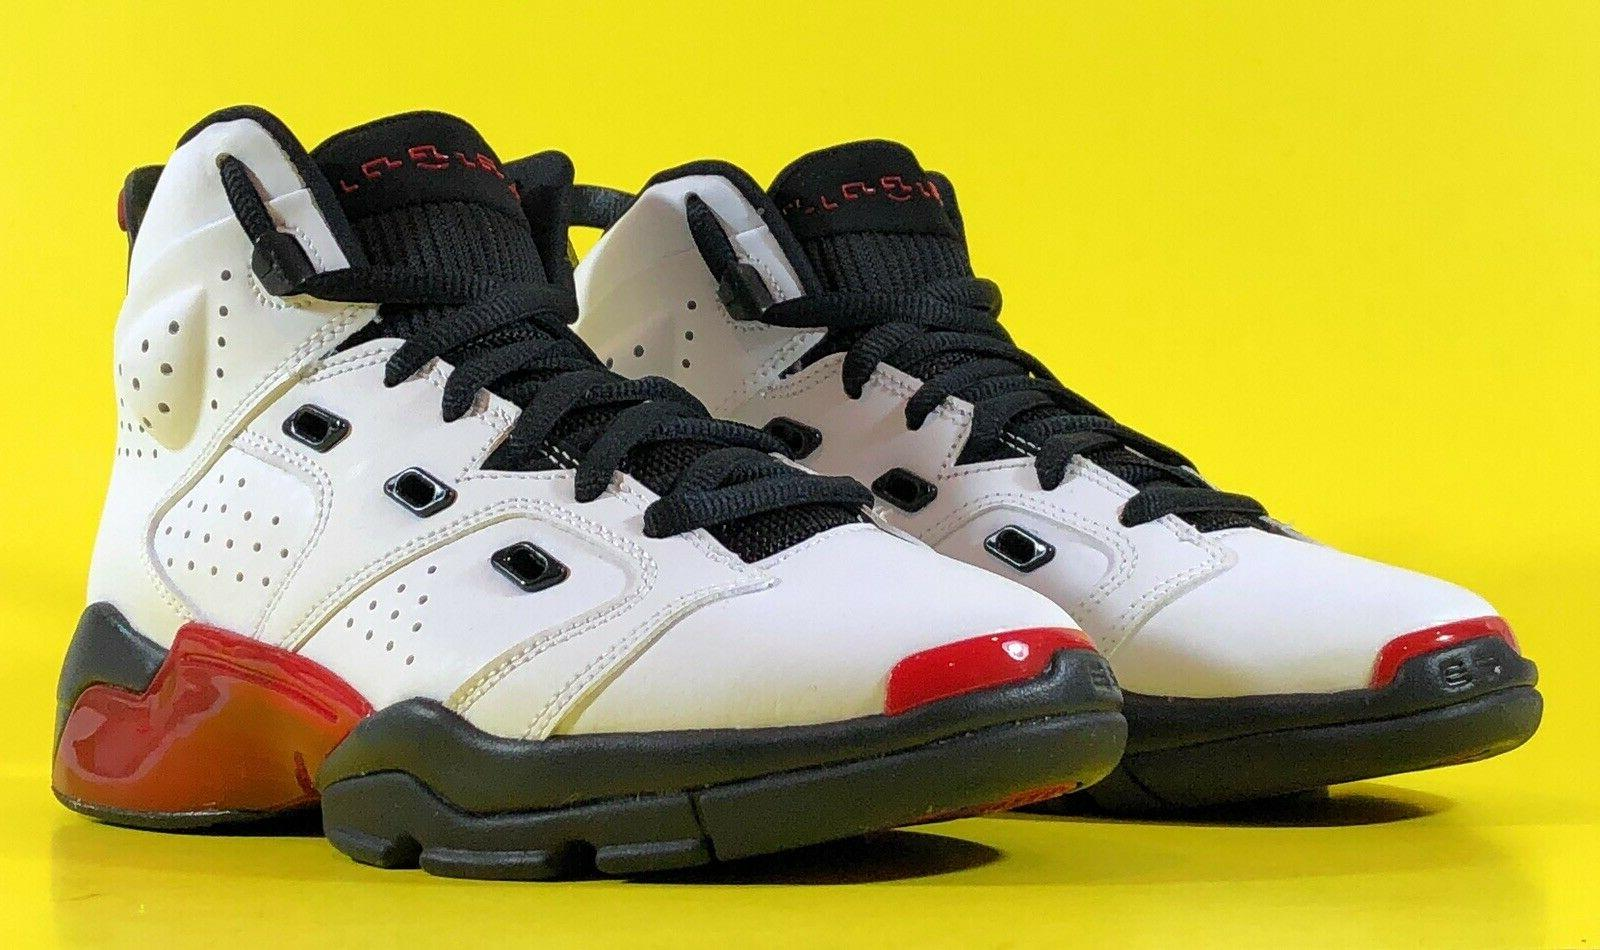 Air 6-17-23 Gym Red Black Basketball Shoes